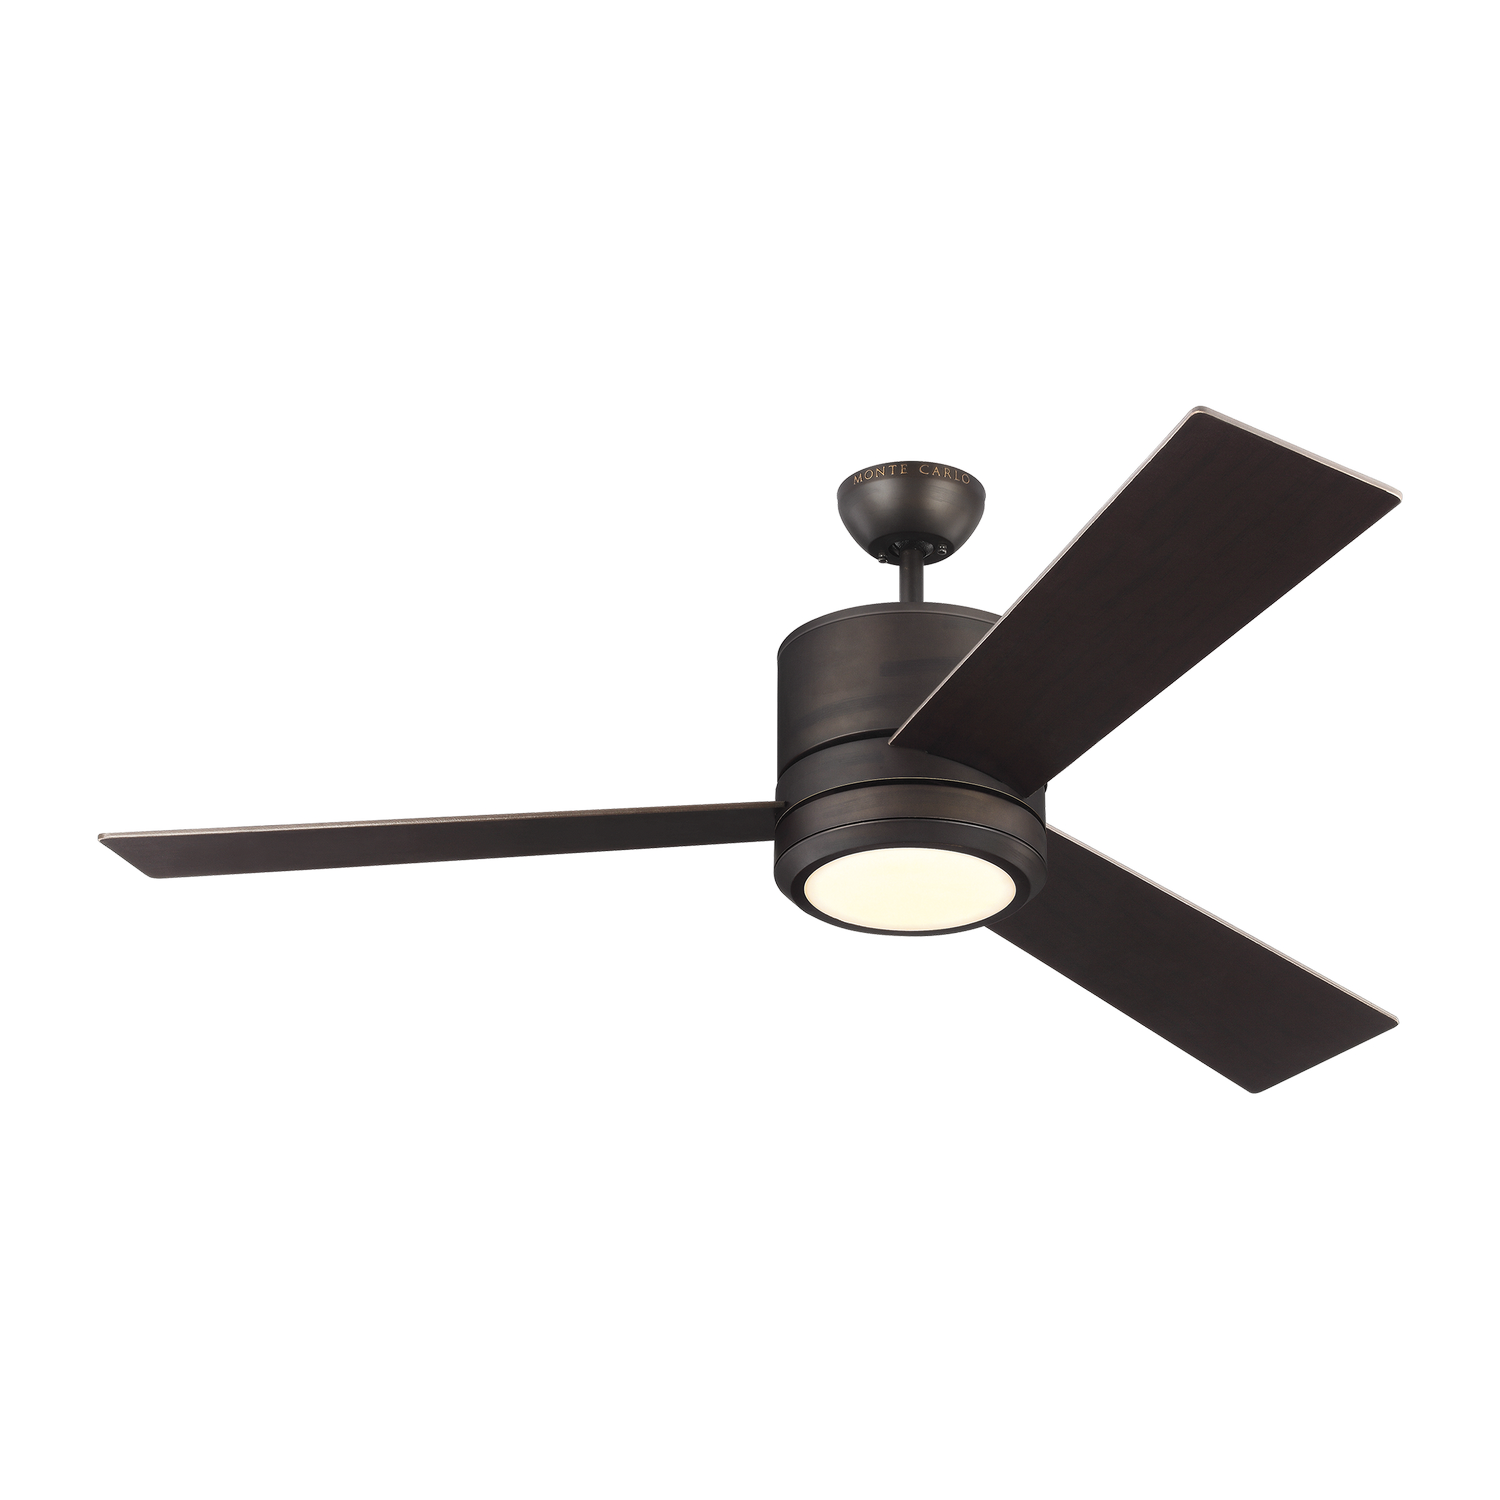 56 inchCeiling Fan from the Vision Max collection by Monte Carlo 3VNMR56RBD V1